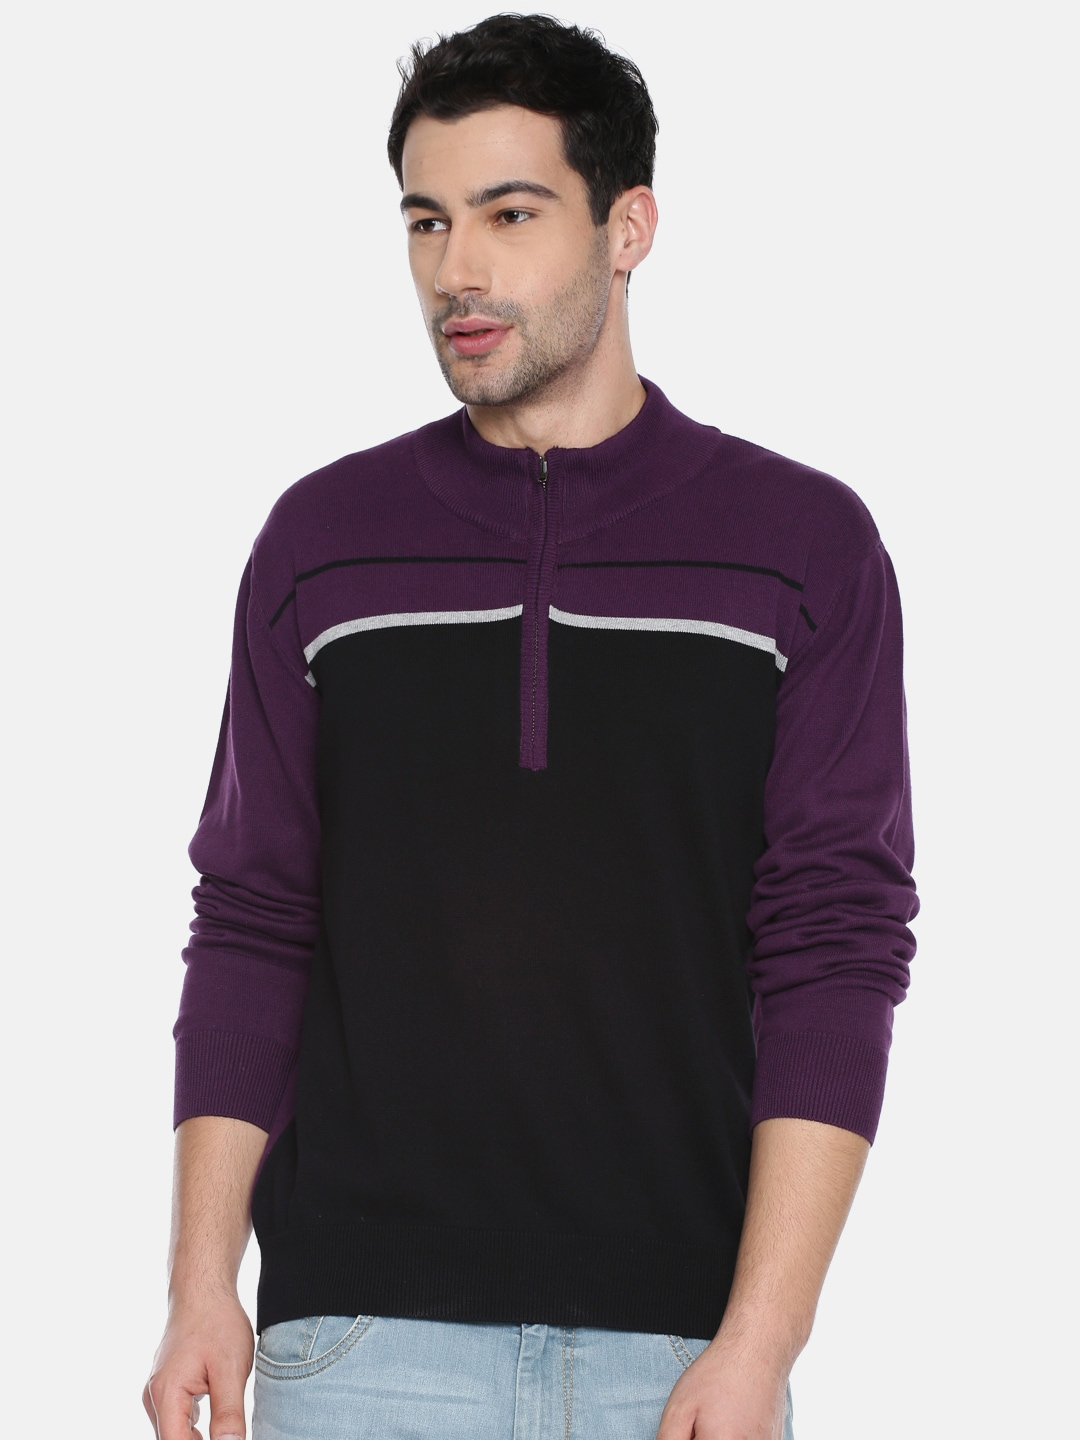 071e3cc49a59 Sweaters for Men - Buy Mens Sweaters